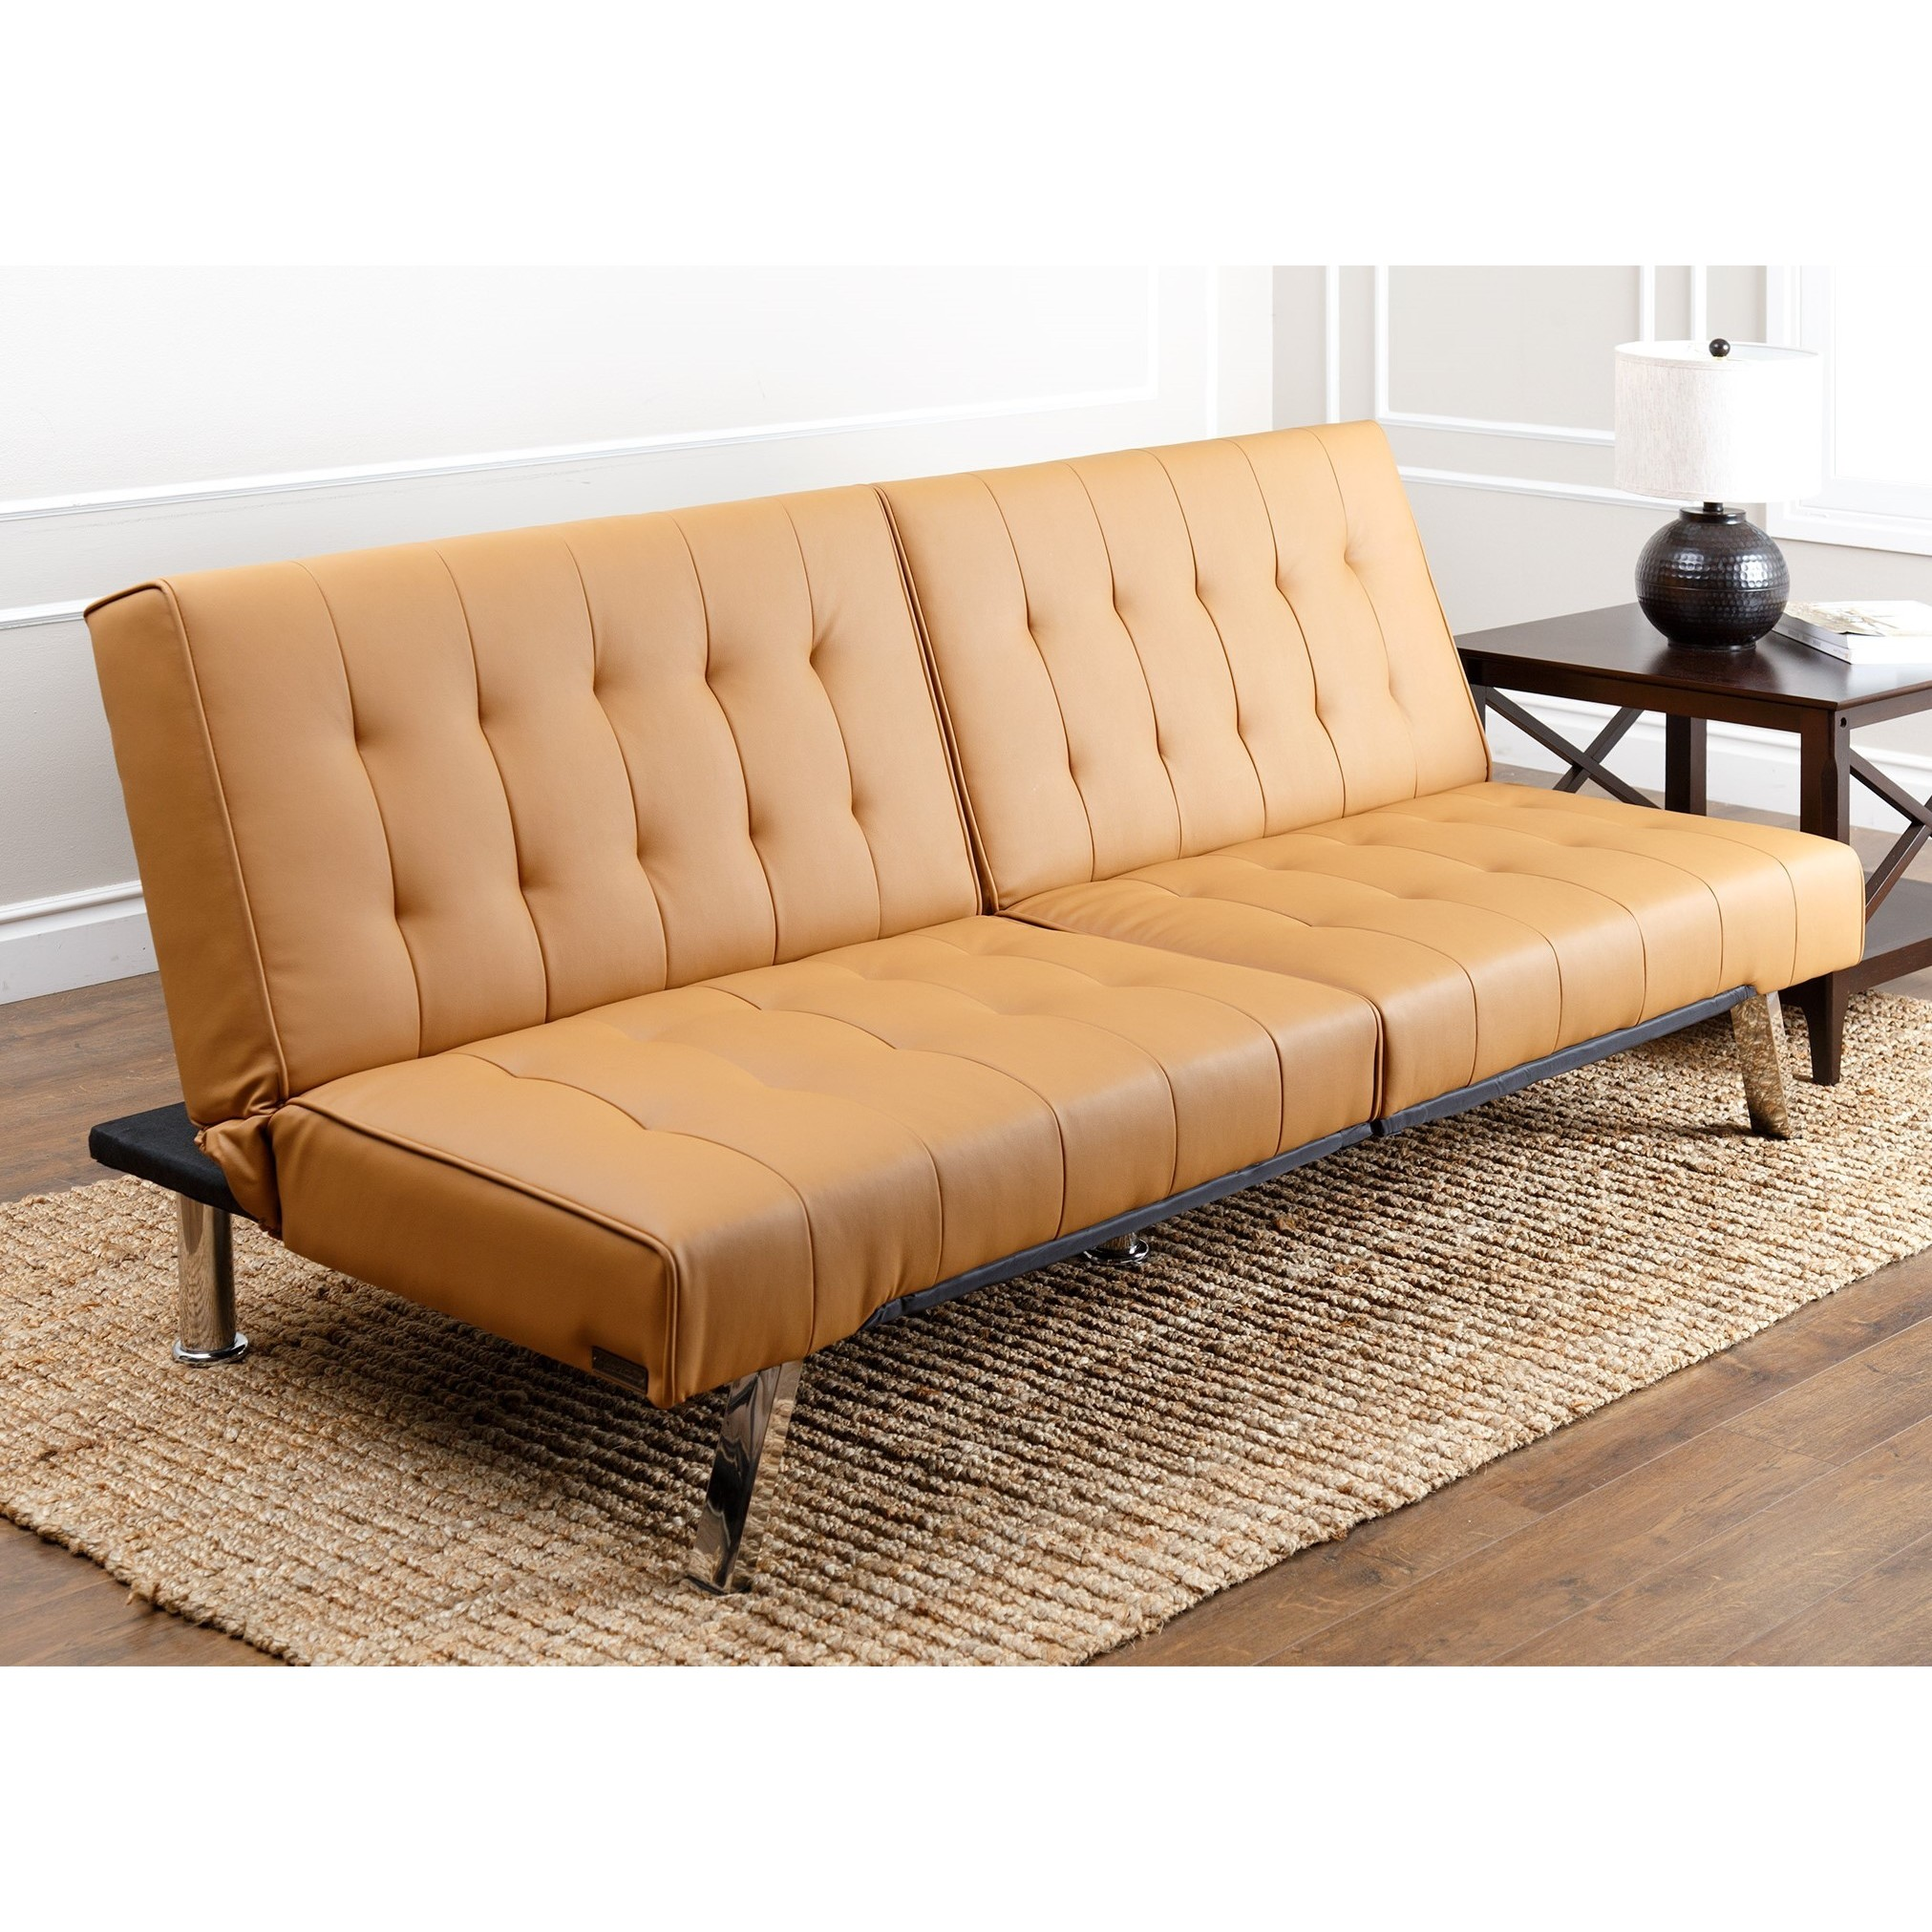 Sofa Bed Deals: Standard Shipping Details